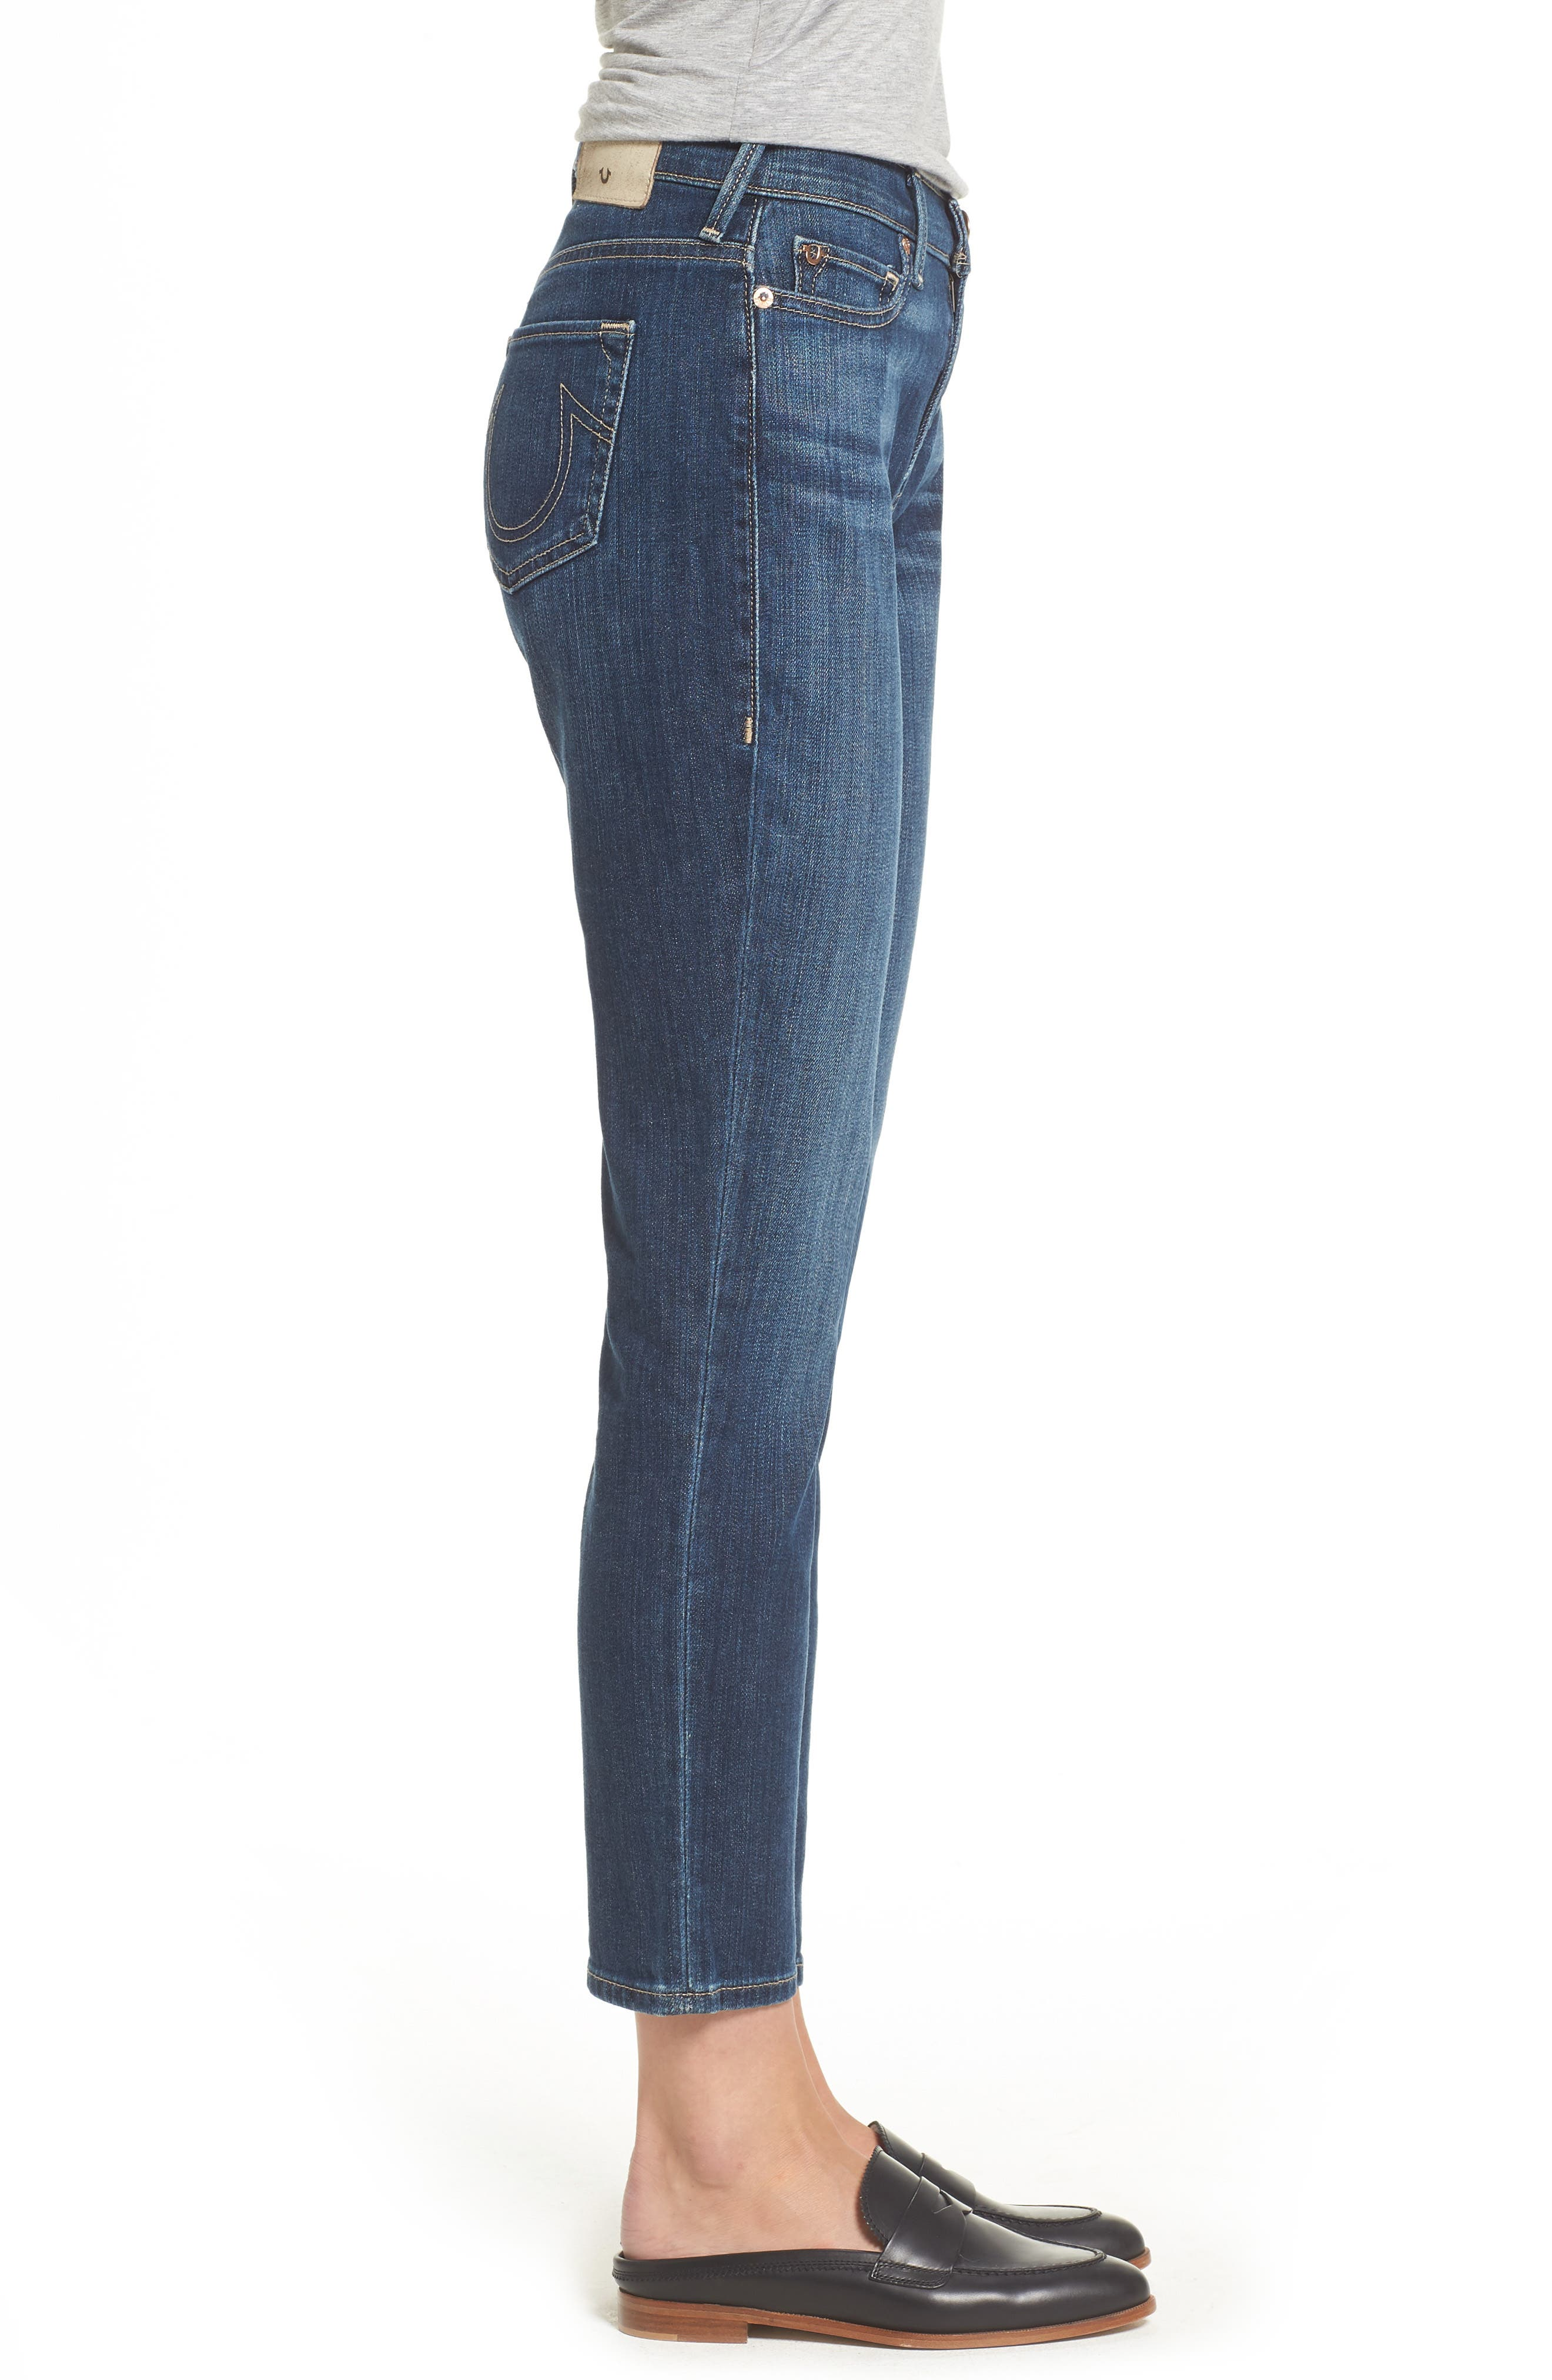 Colette High Waist Tapered Skinny Jeans,                             Alternate thumbnail 3, color,                             402